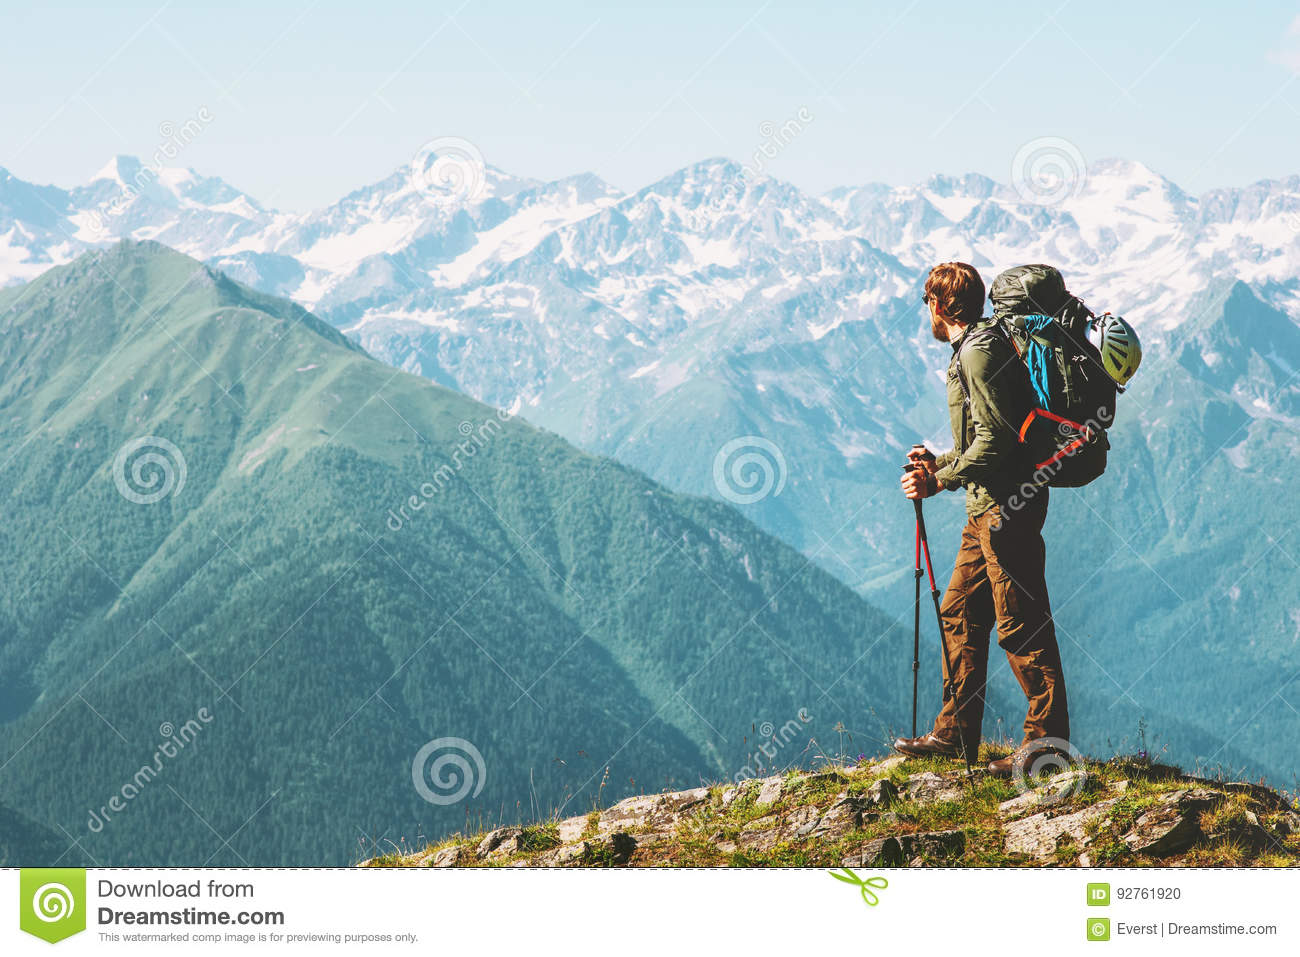 3df1a0154f7b Traveler Man hiking with backpack Travel Lifestyle concept adventure summer  vacations outdoor Caucasus mountains range landscape on background